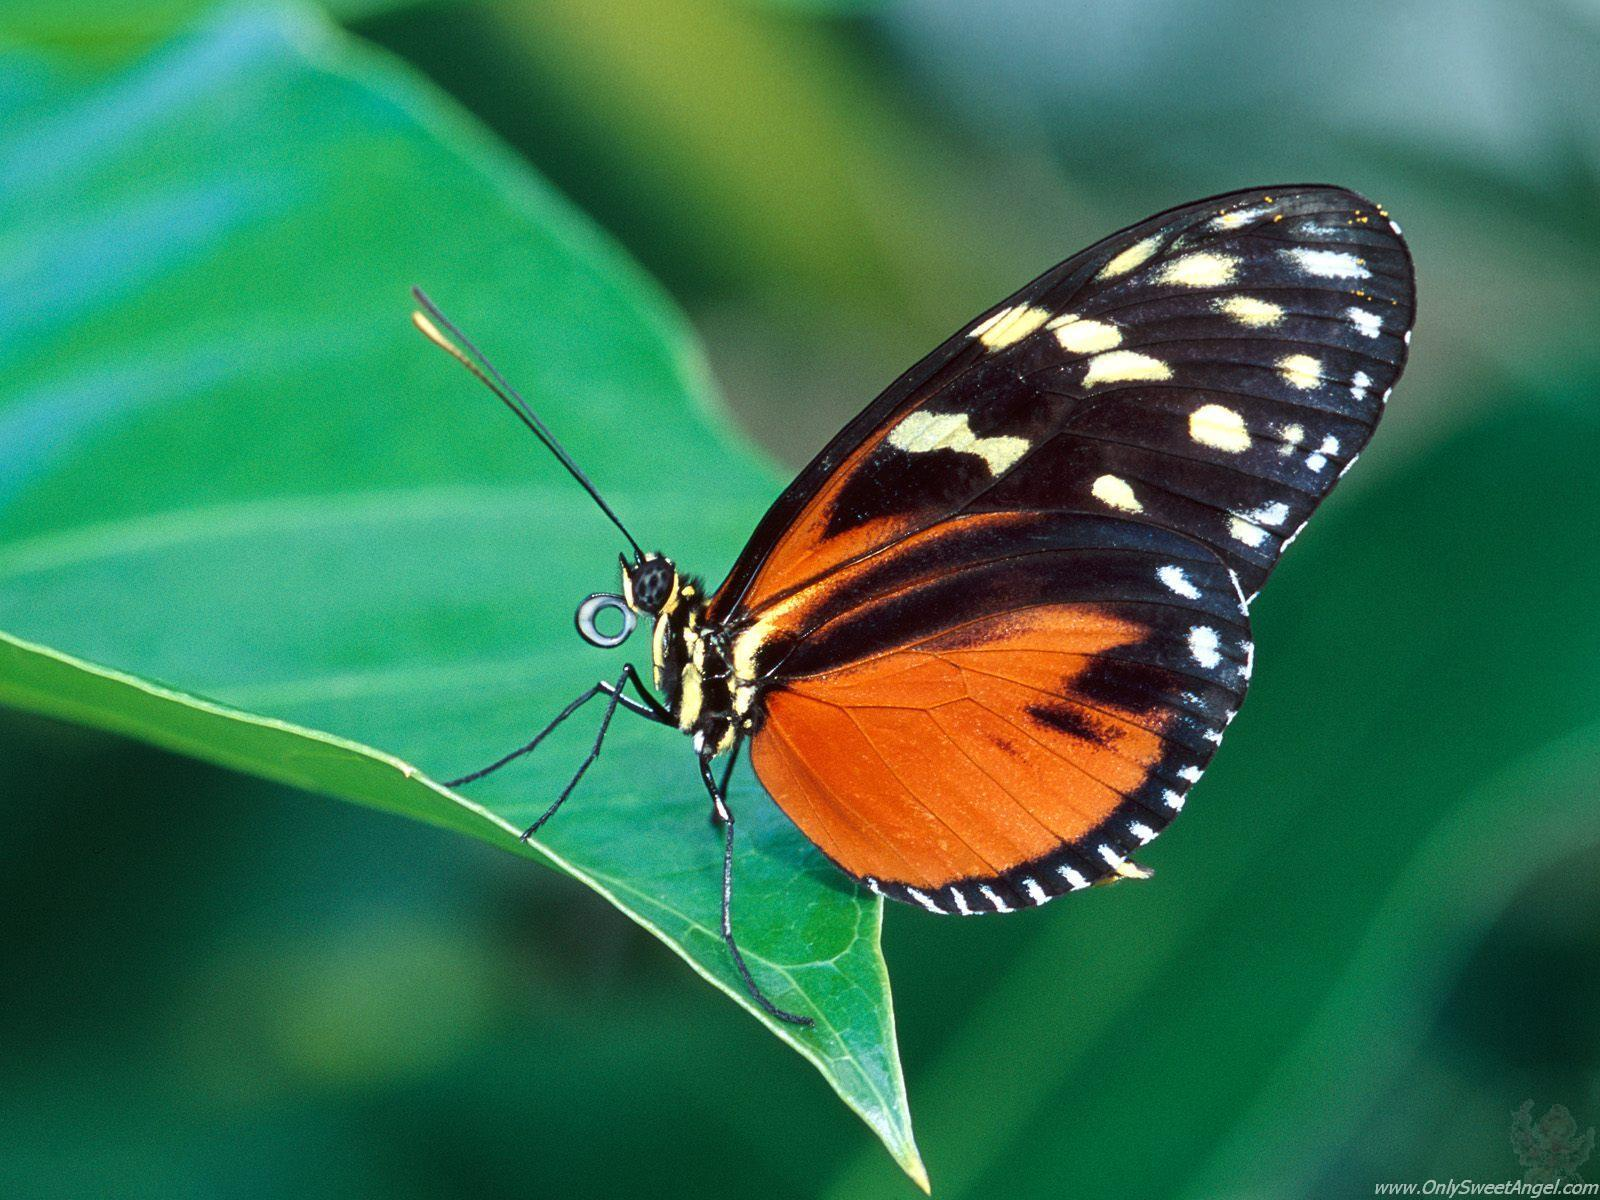 peacock butterfly flower wallpapers - Peacock Butterfly Flower HD Wallpaper Wallpaperrs